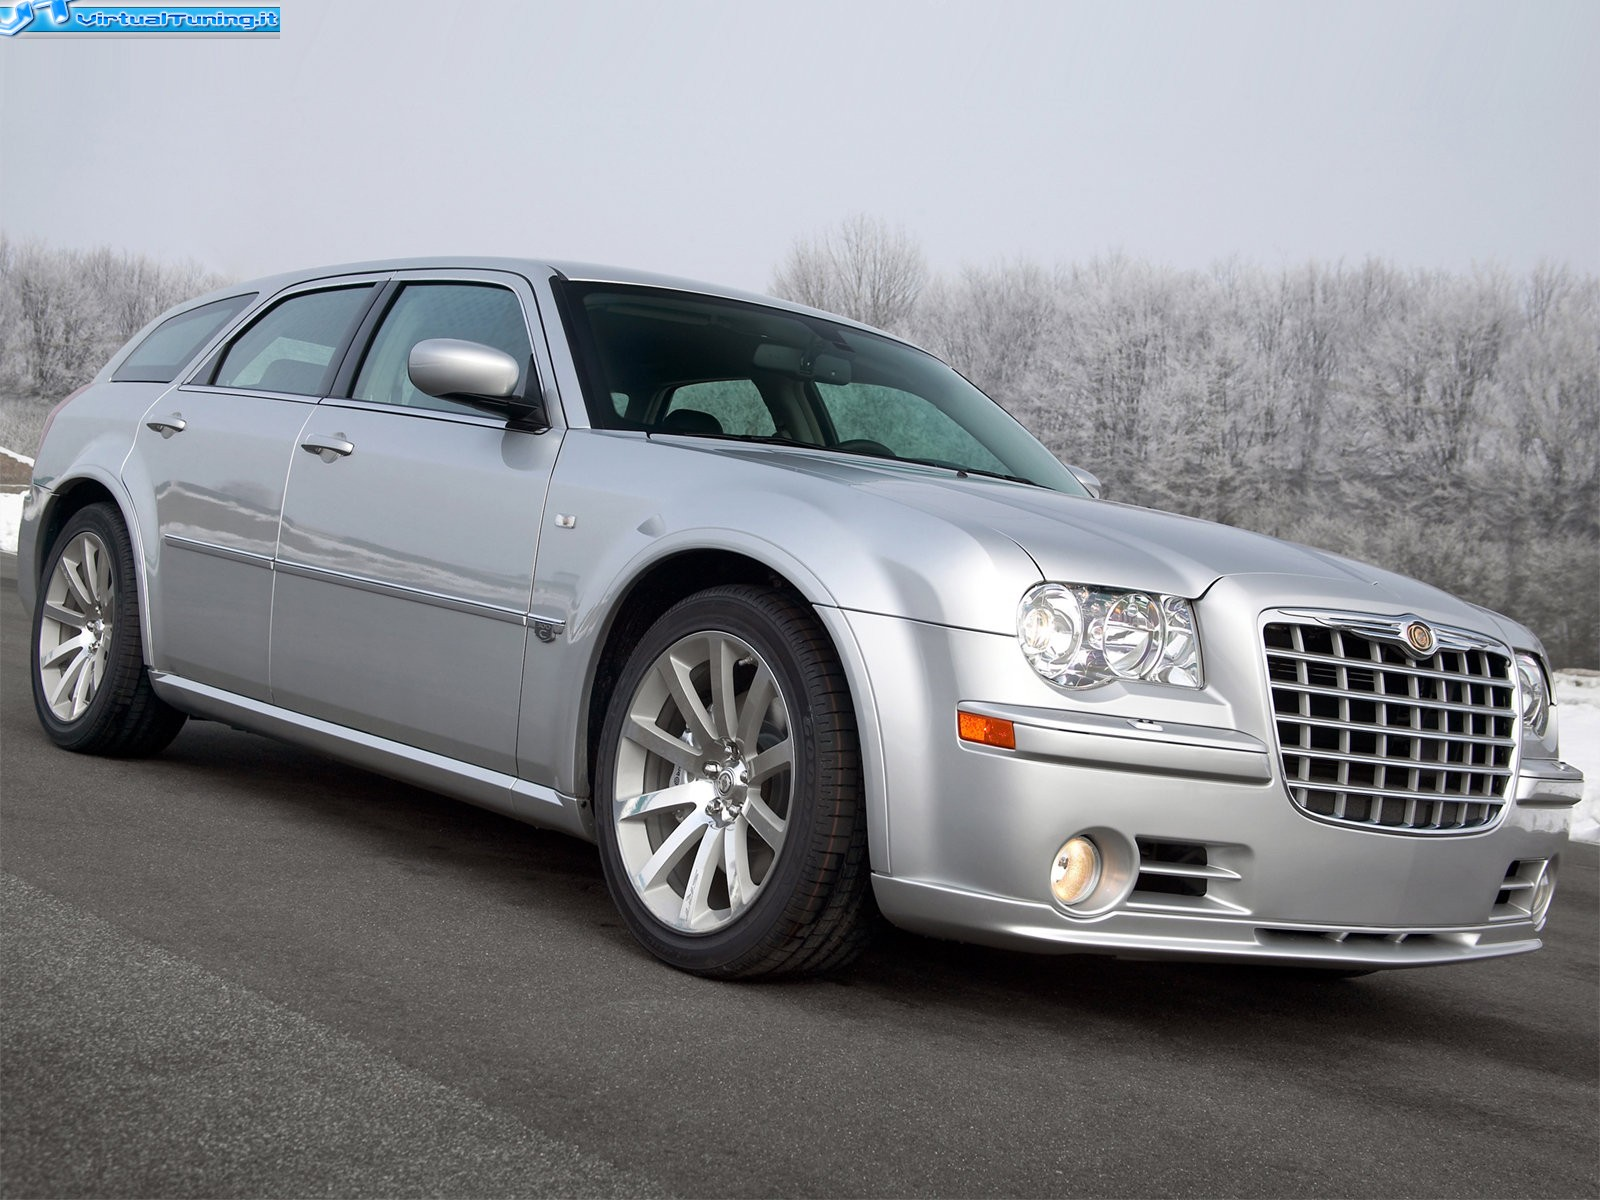 chrysler 300c touring by alanmaranho virtualtuning it. Black Bedroom Furniture Sets. Home Design Ideas